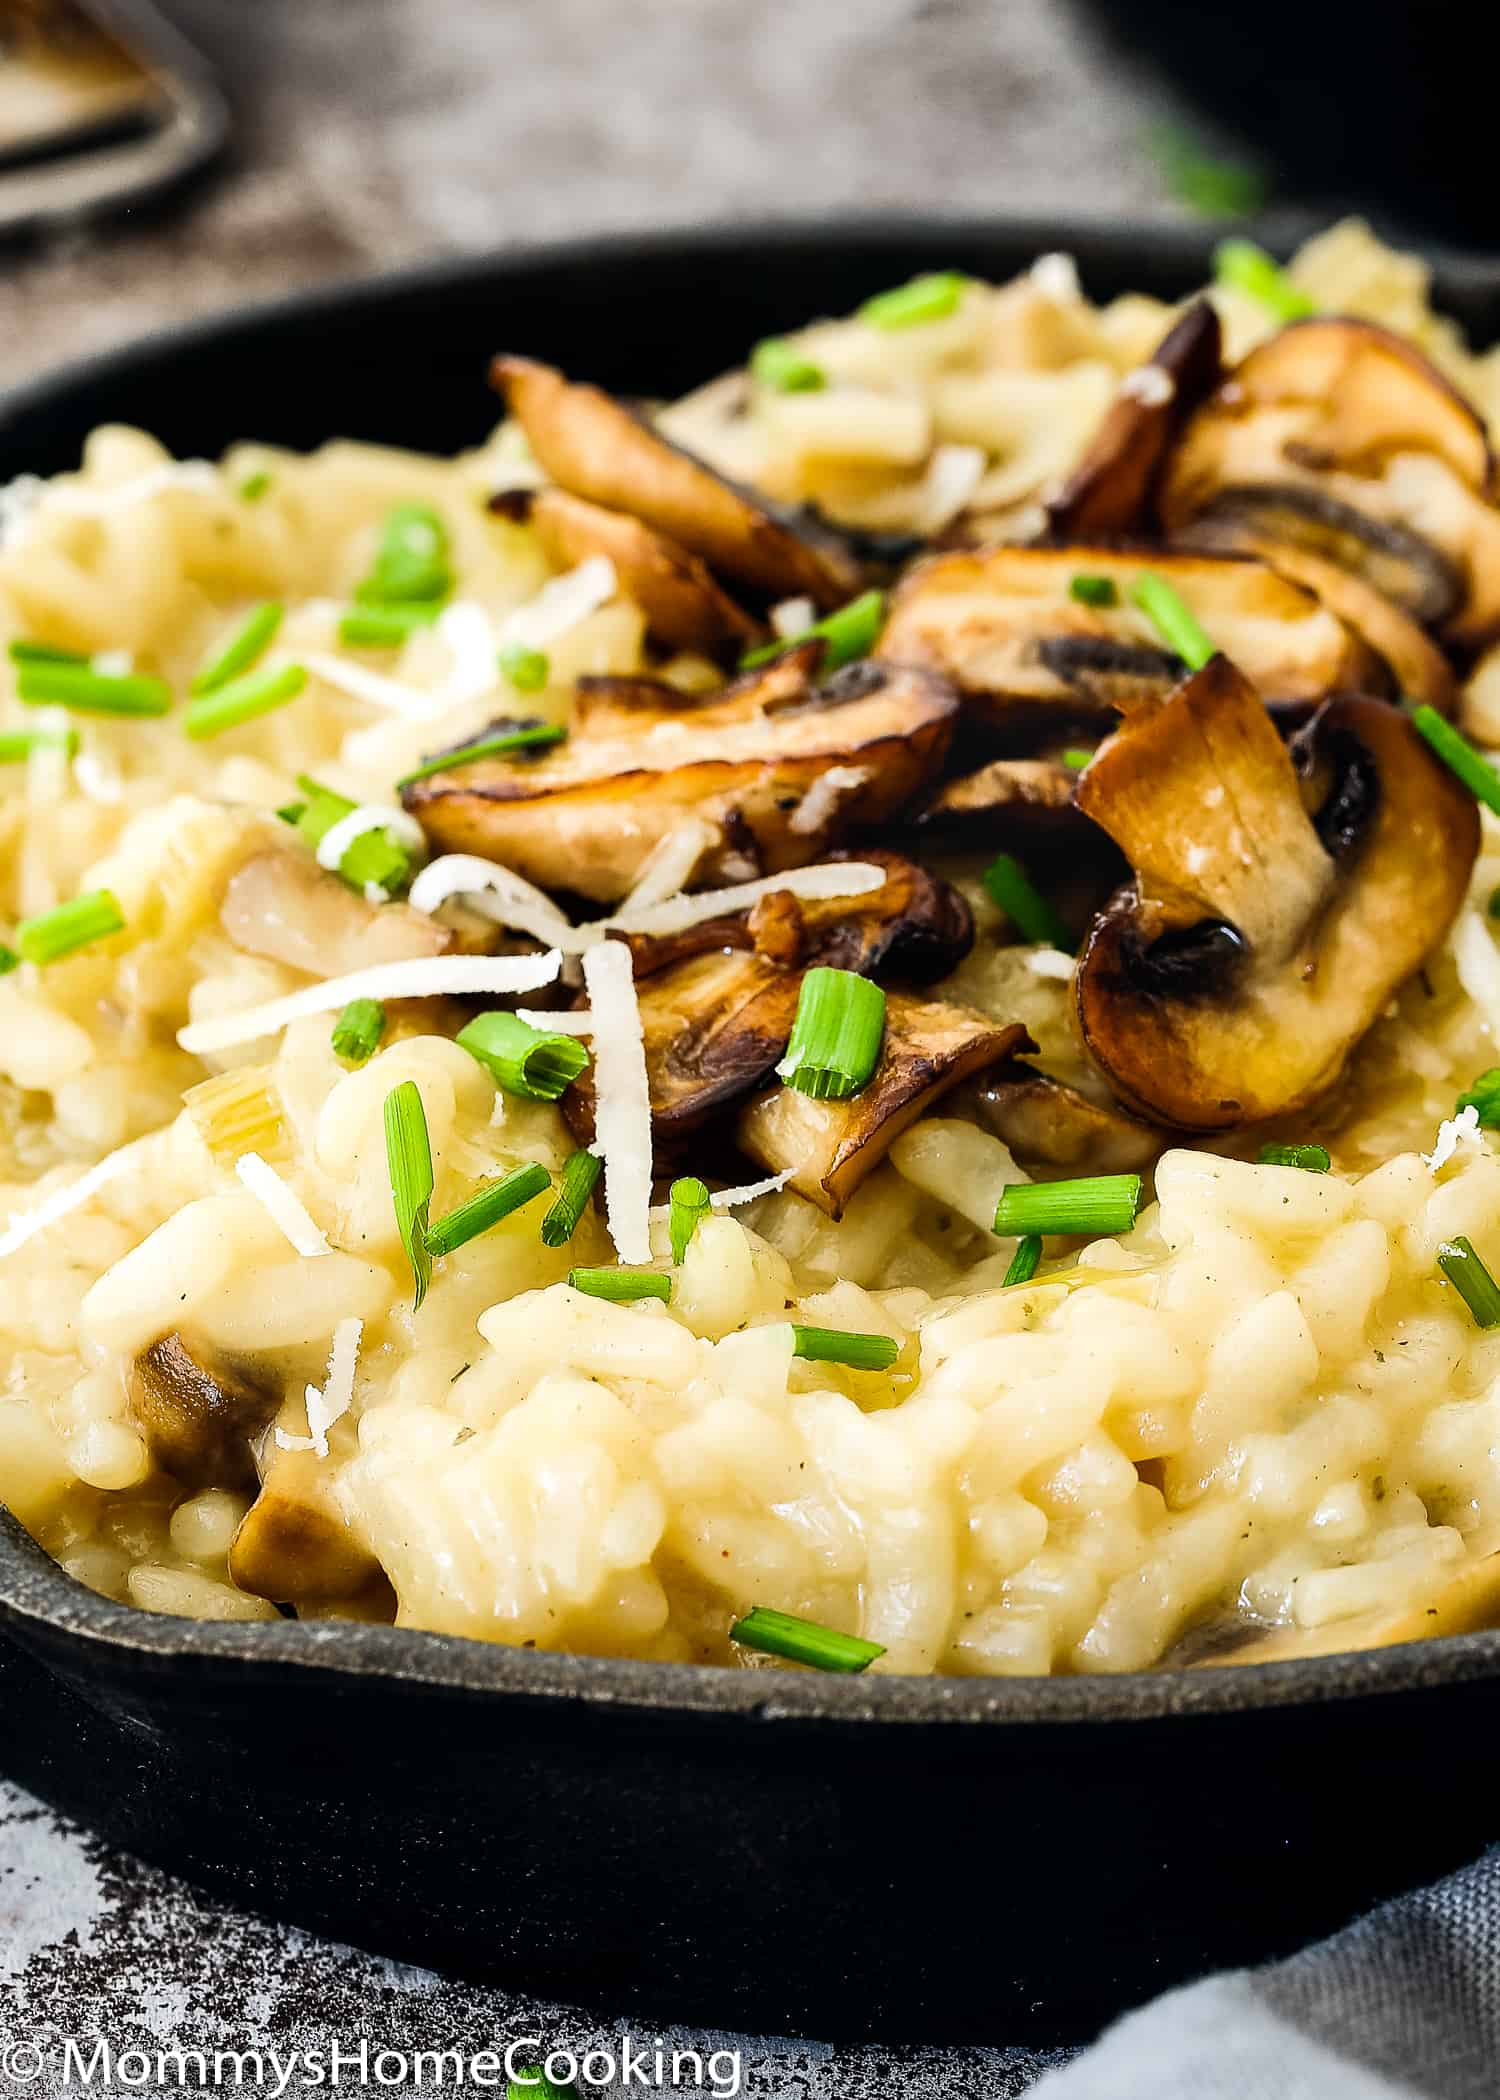 This Easy Pressure Cooker Mushroom Risotto recipe is quick, easy and hassle-free. Perfectly creamy and silky, this rice can be served as a luscious side or unique main dish. https://mommyshomecooking.com